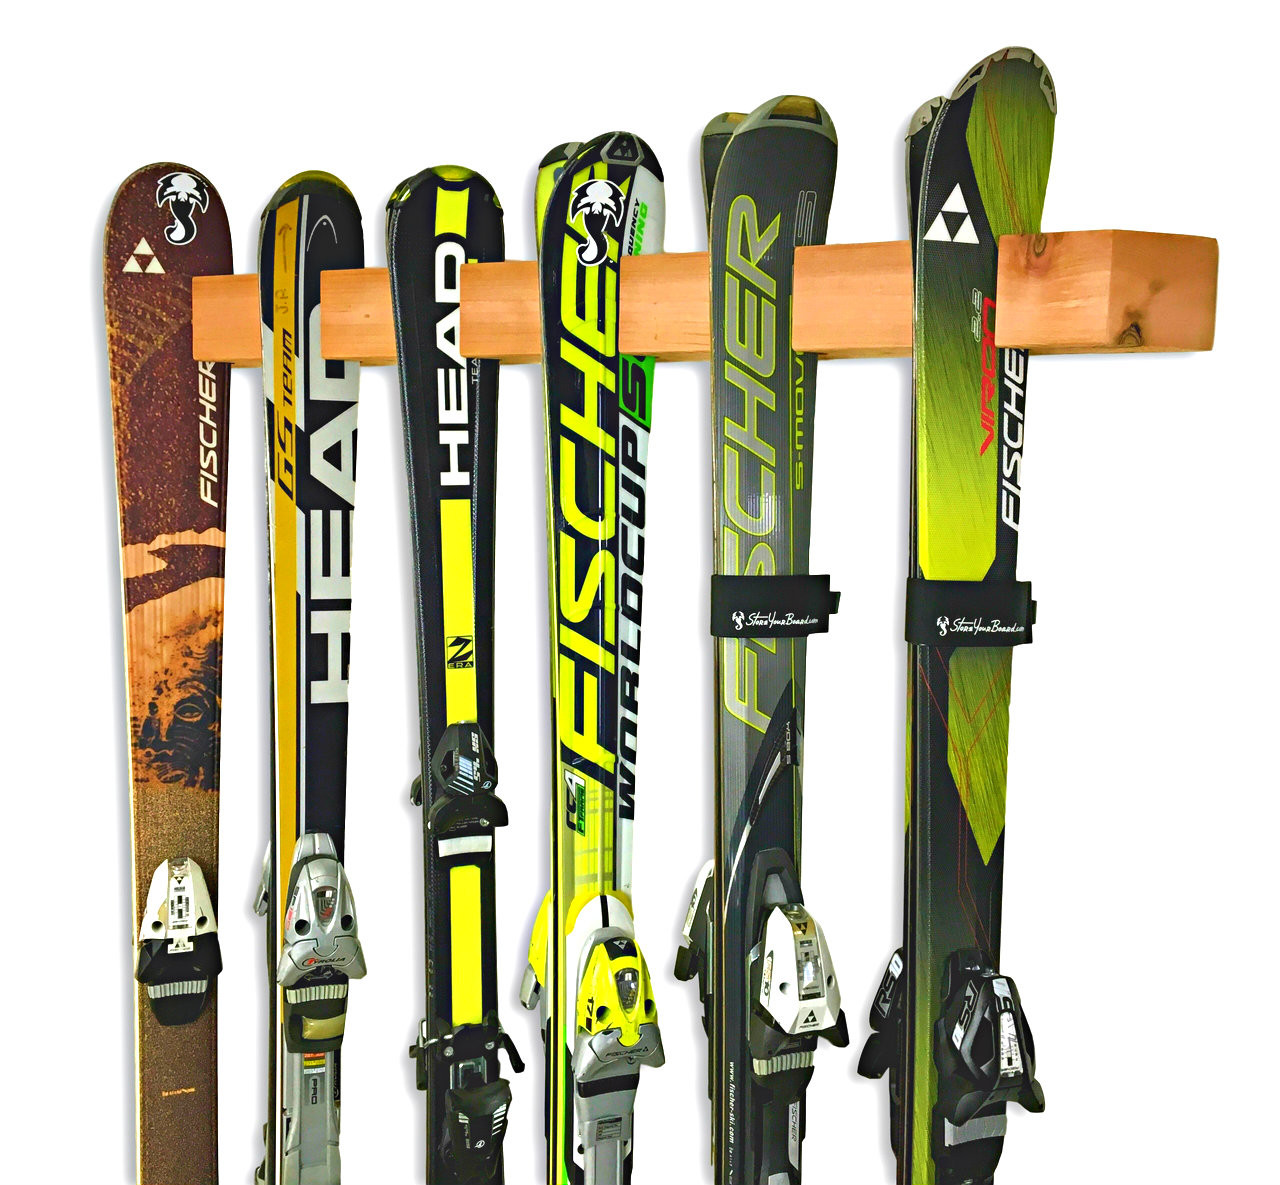 Handcrafted Vertical Cedar Wall Rack | Holds up to 6 Pairs of Skis